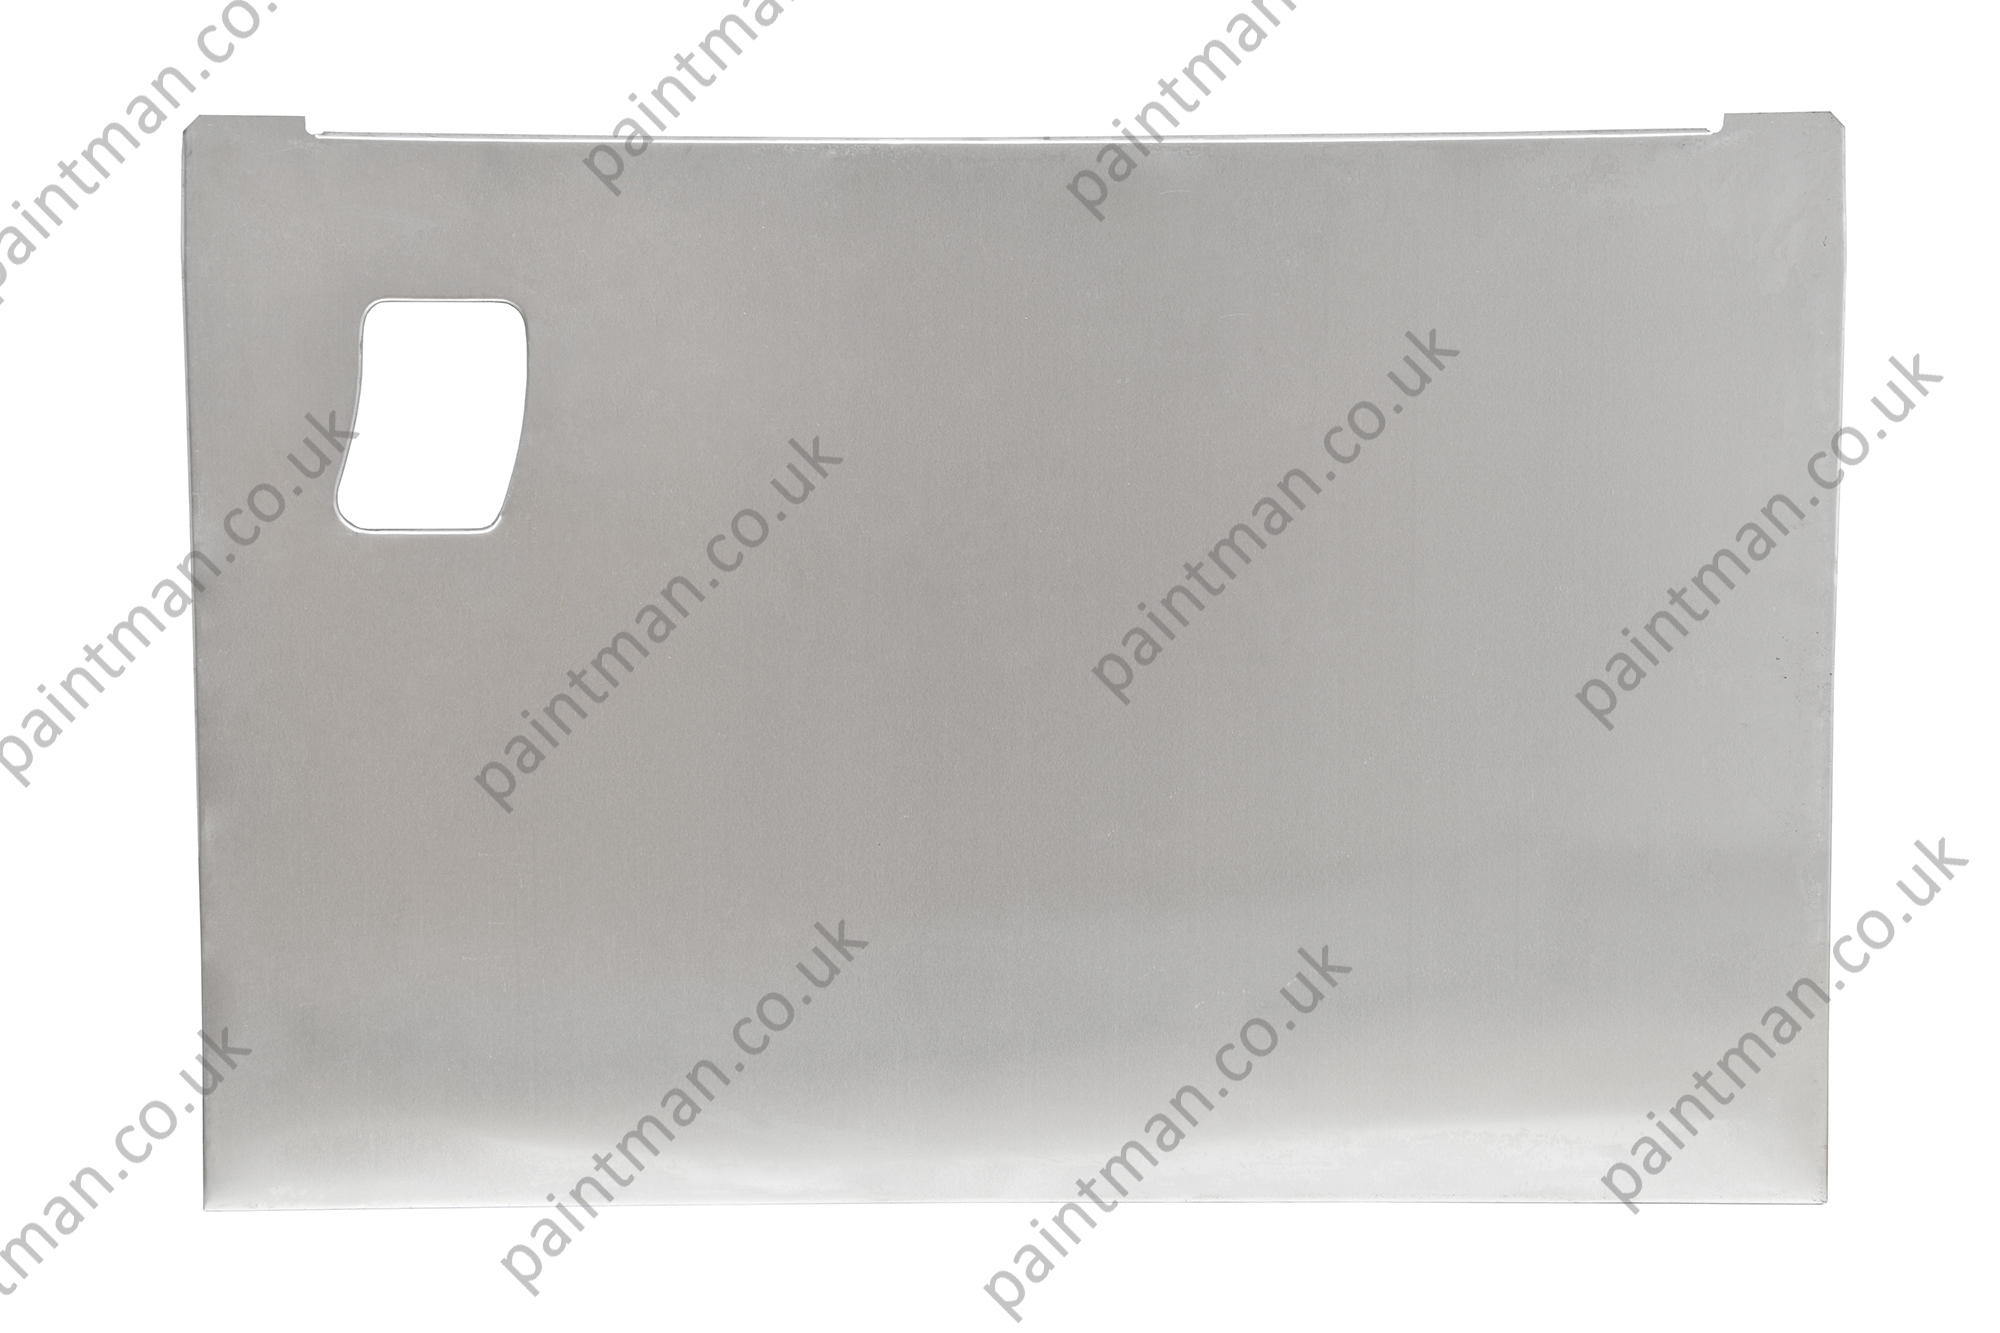 Series/Defender Rear Door Skin